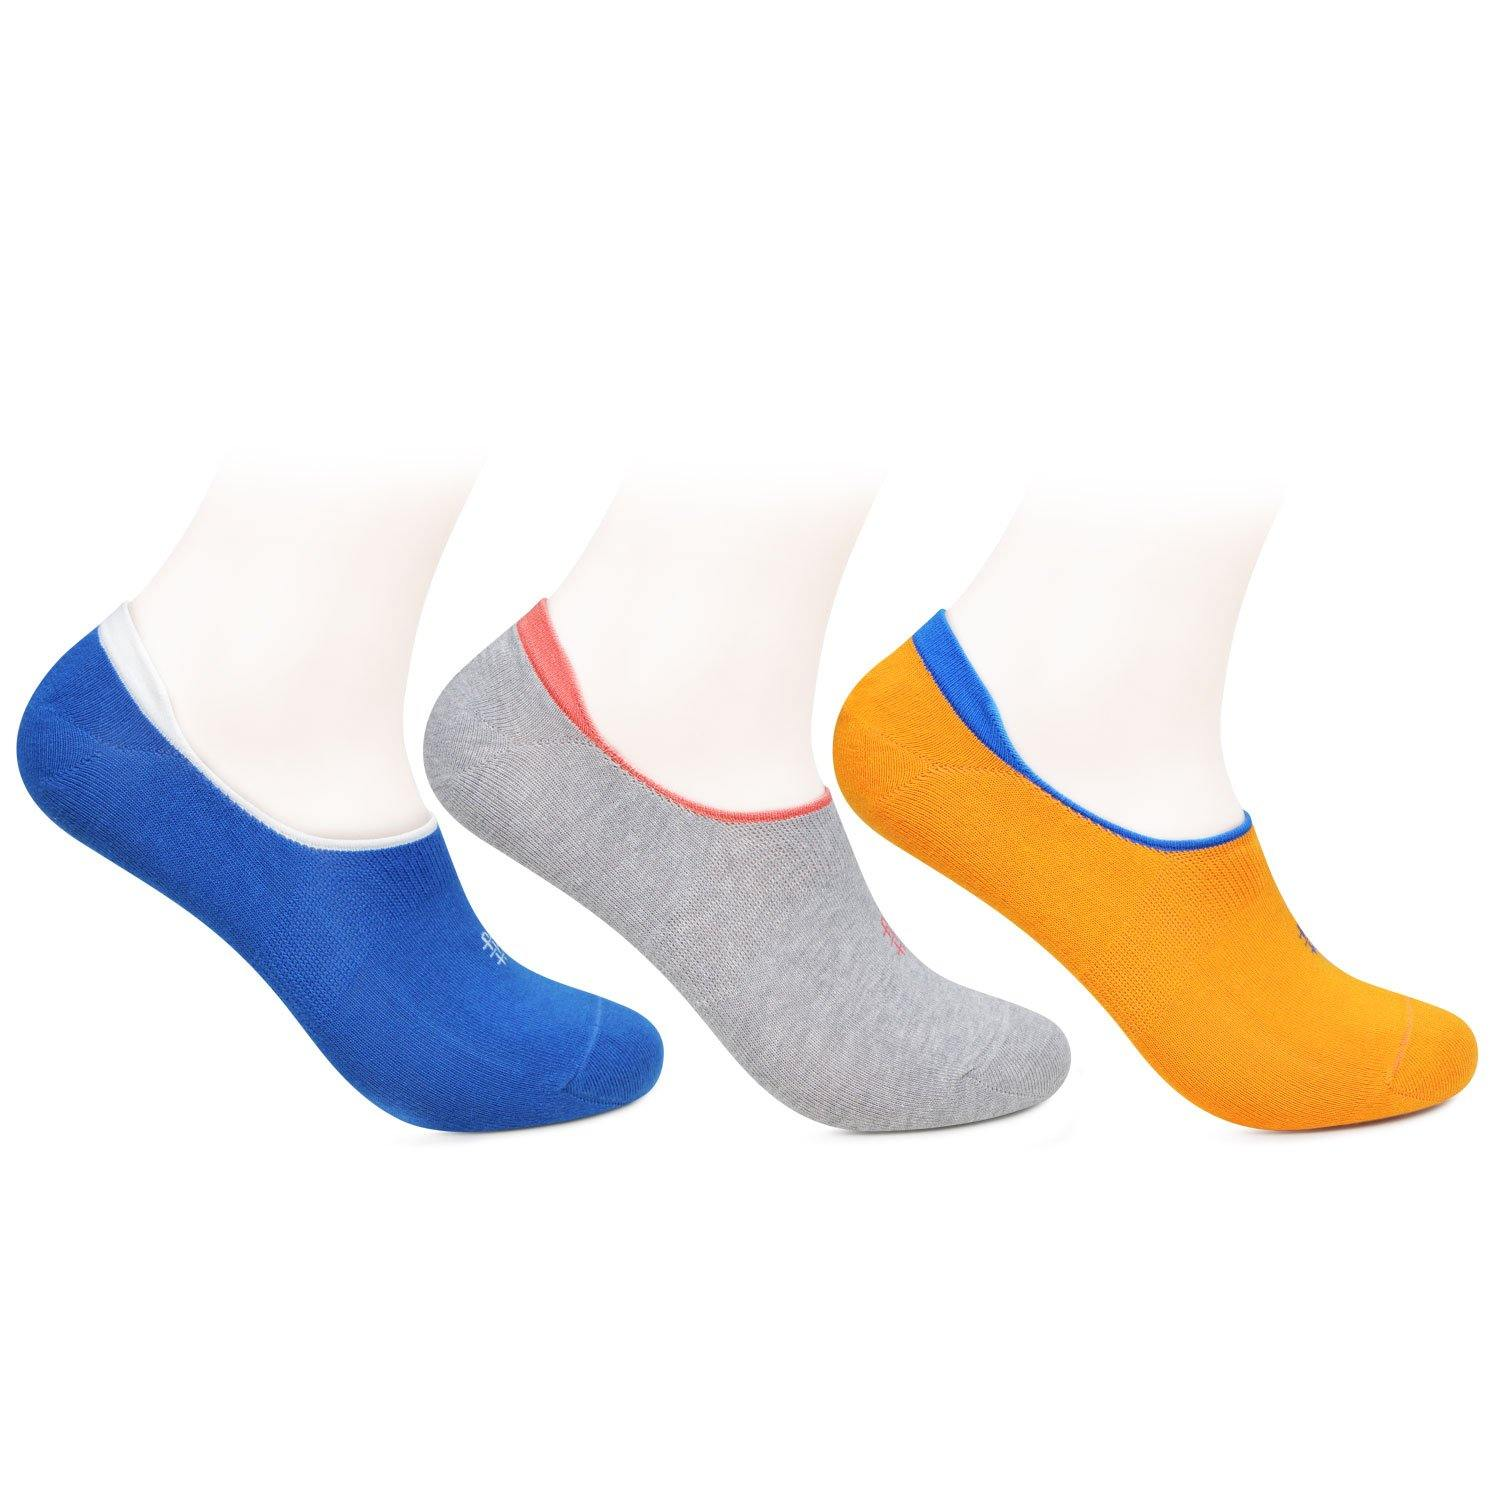 Women's Multicolored Cotton Loafer Socks- Pack Of 3